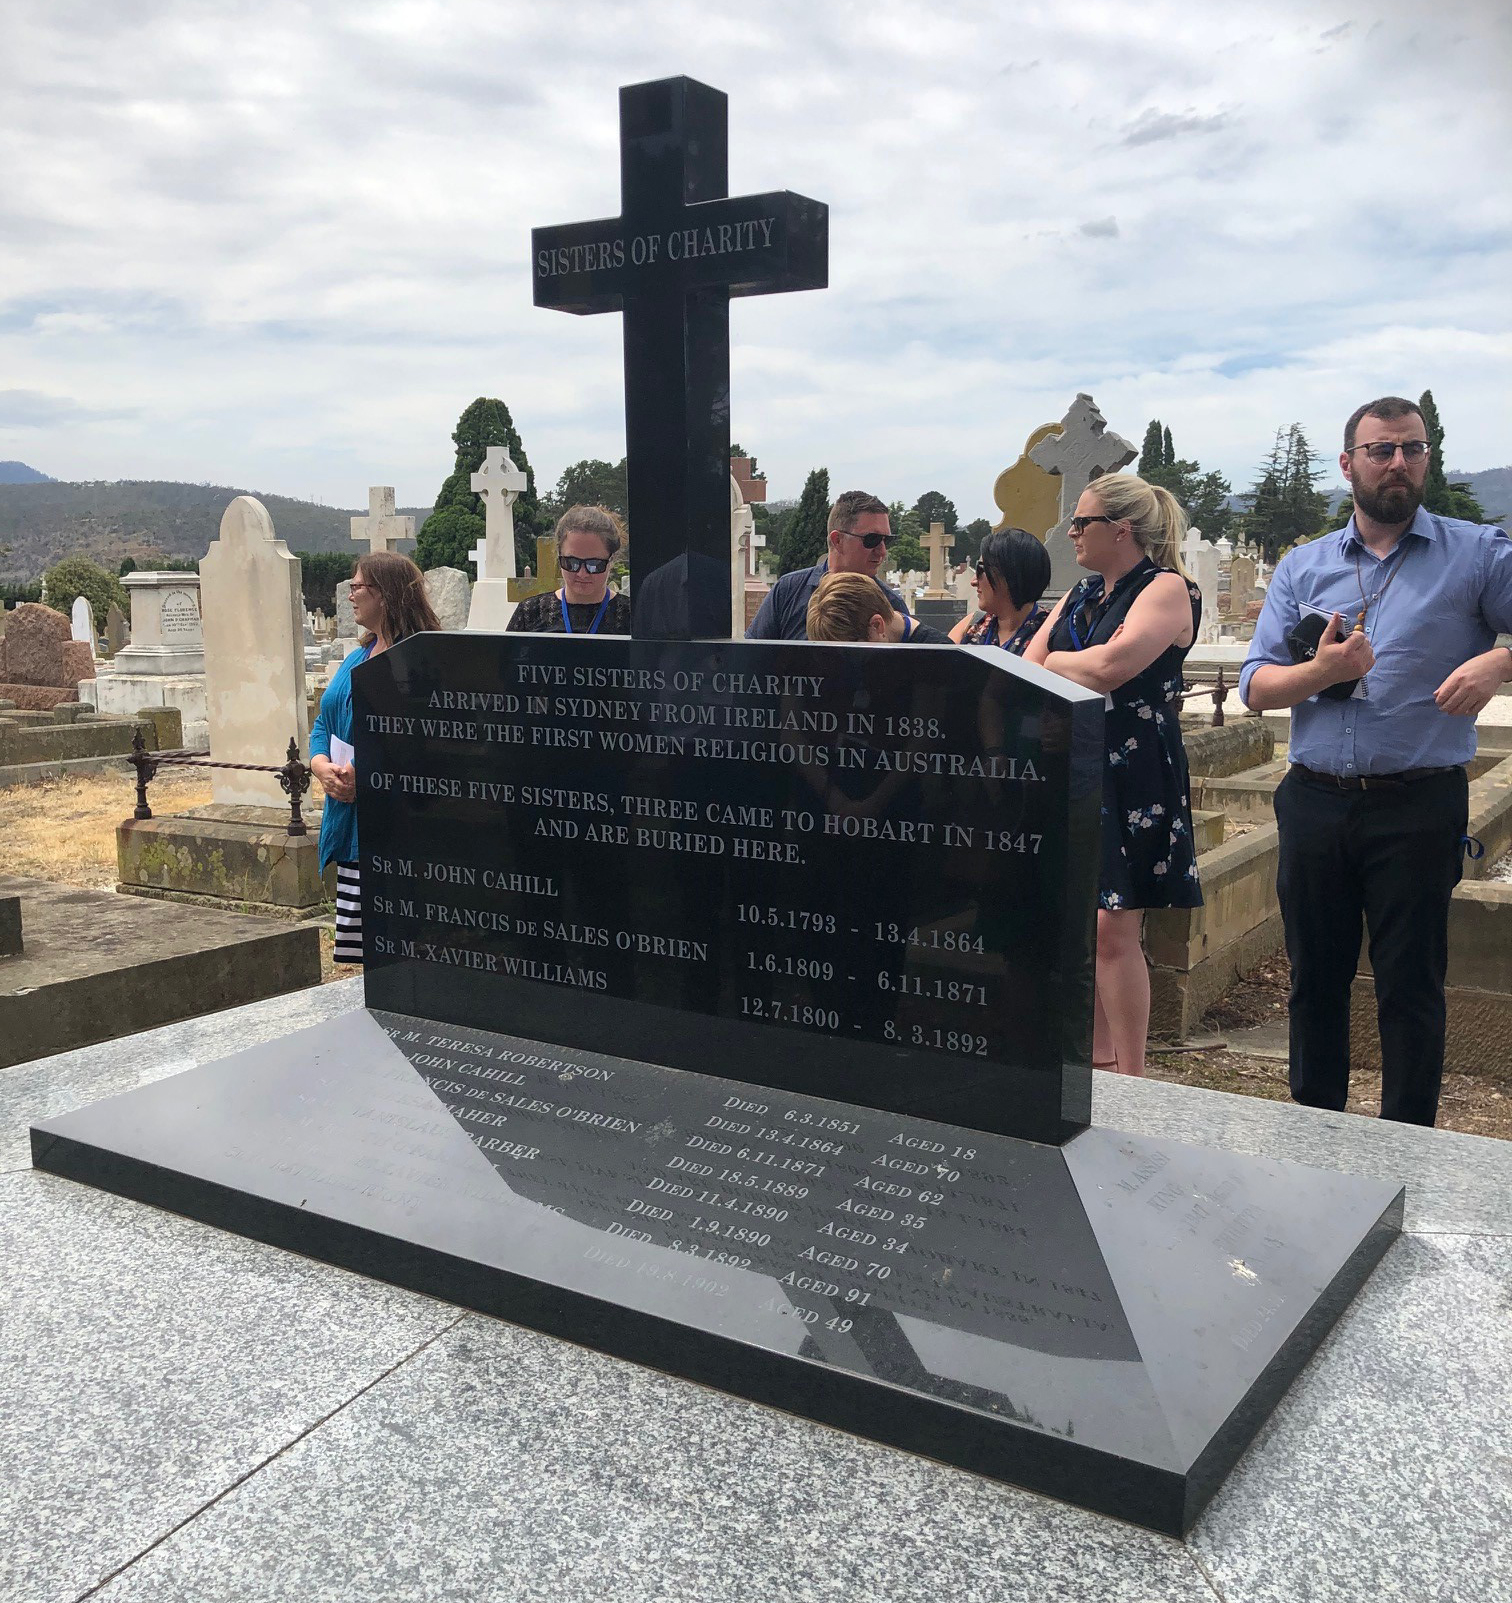 Pilgrims paying their-respects at the-final resting place of the Three Sisters at Cornelian Bay Cemetery